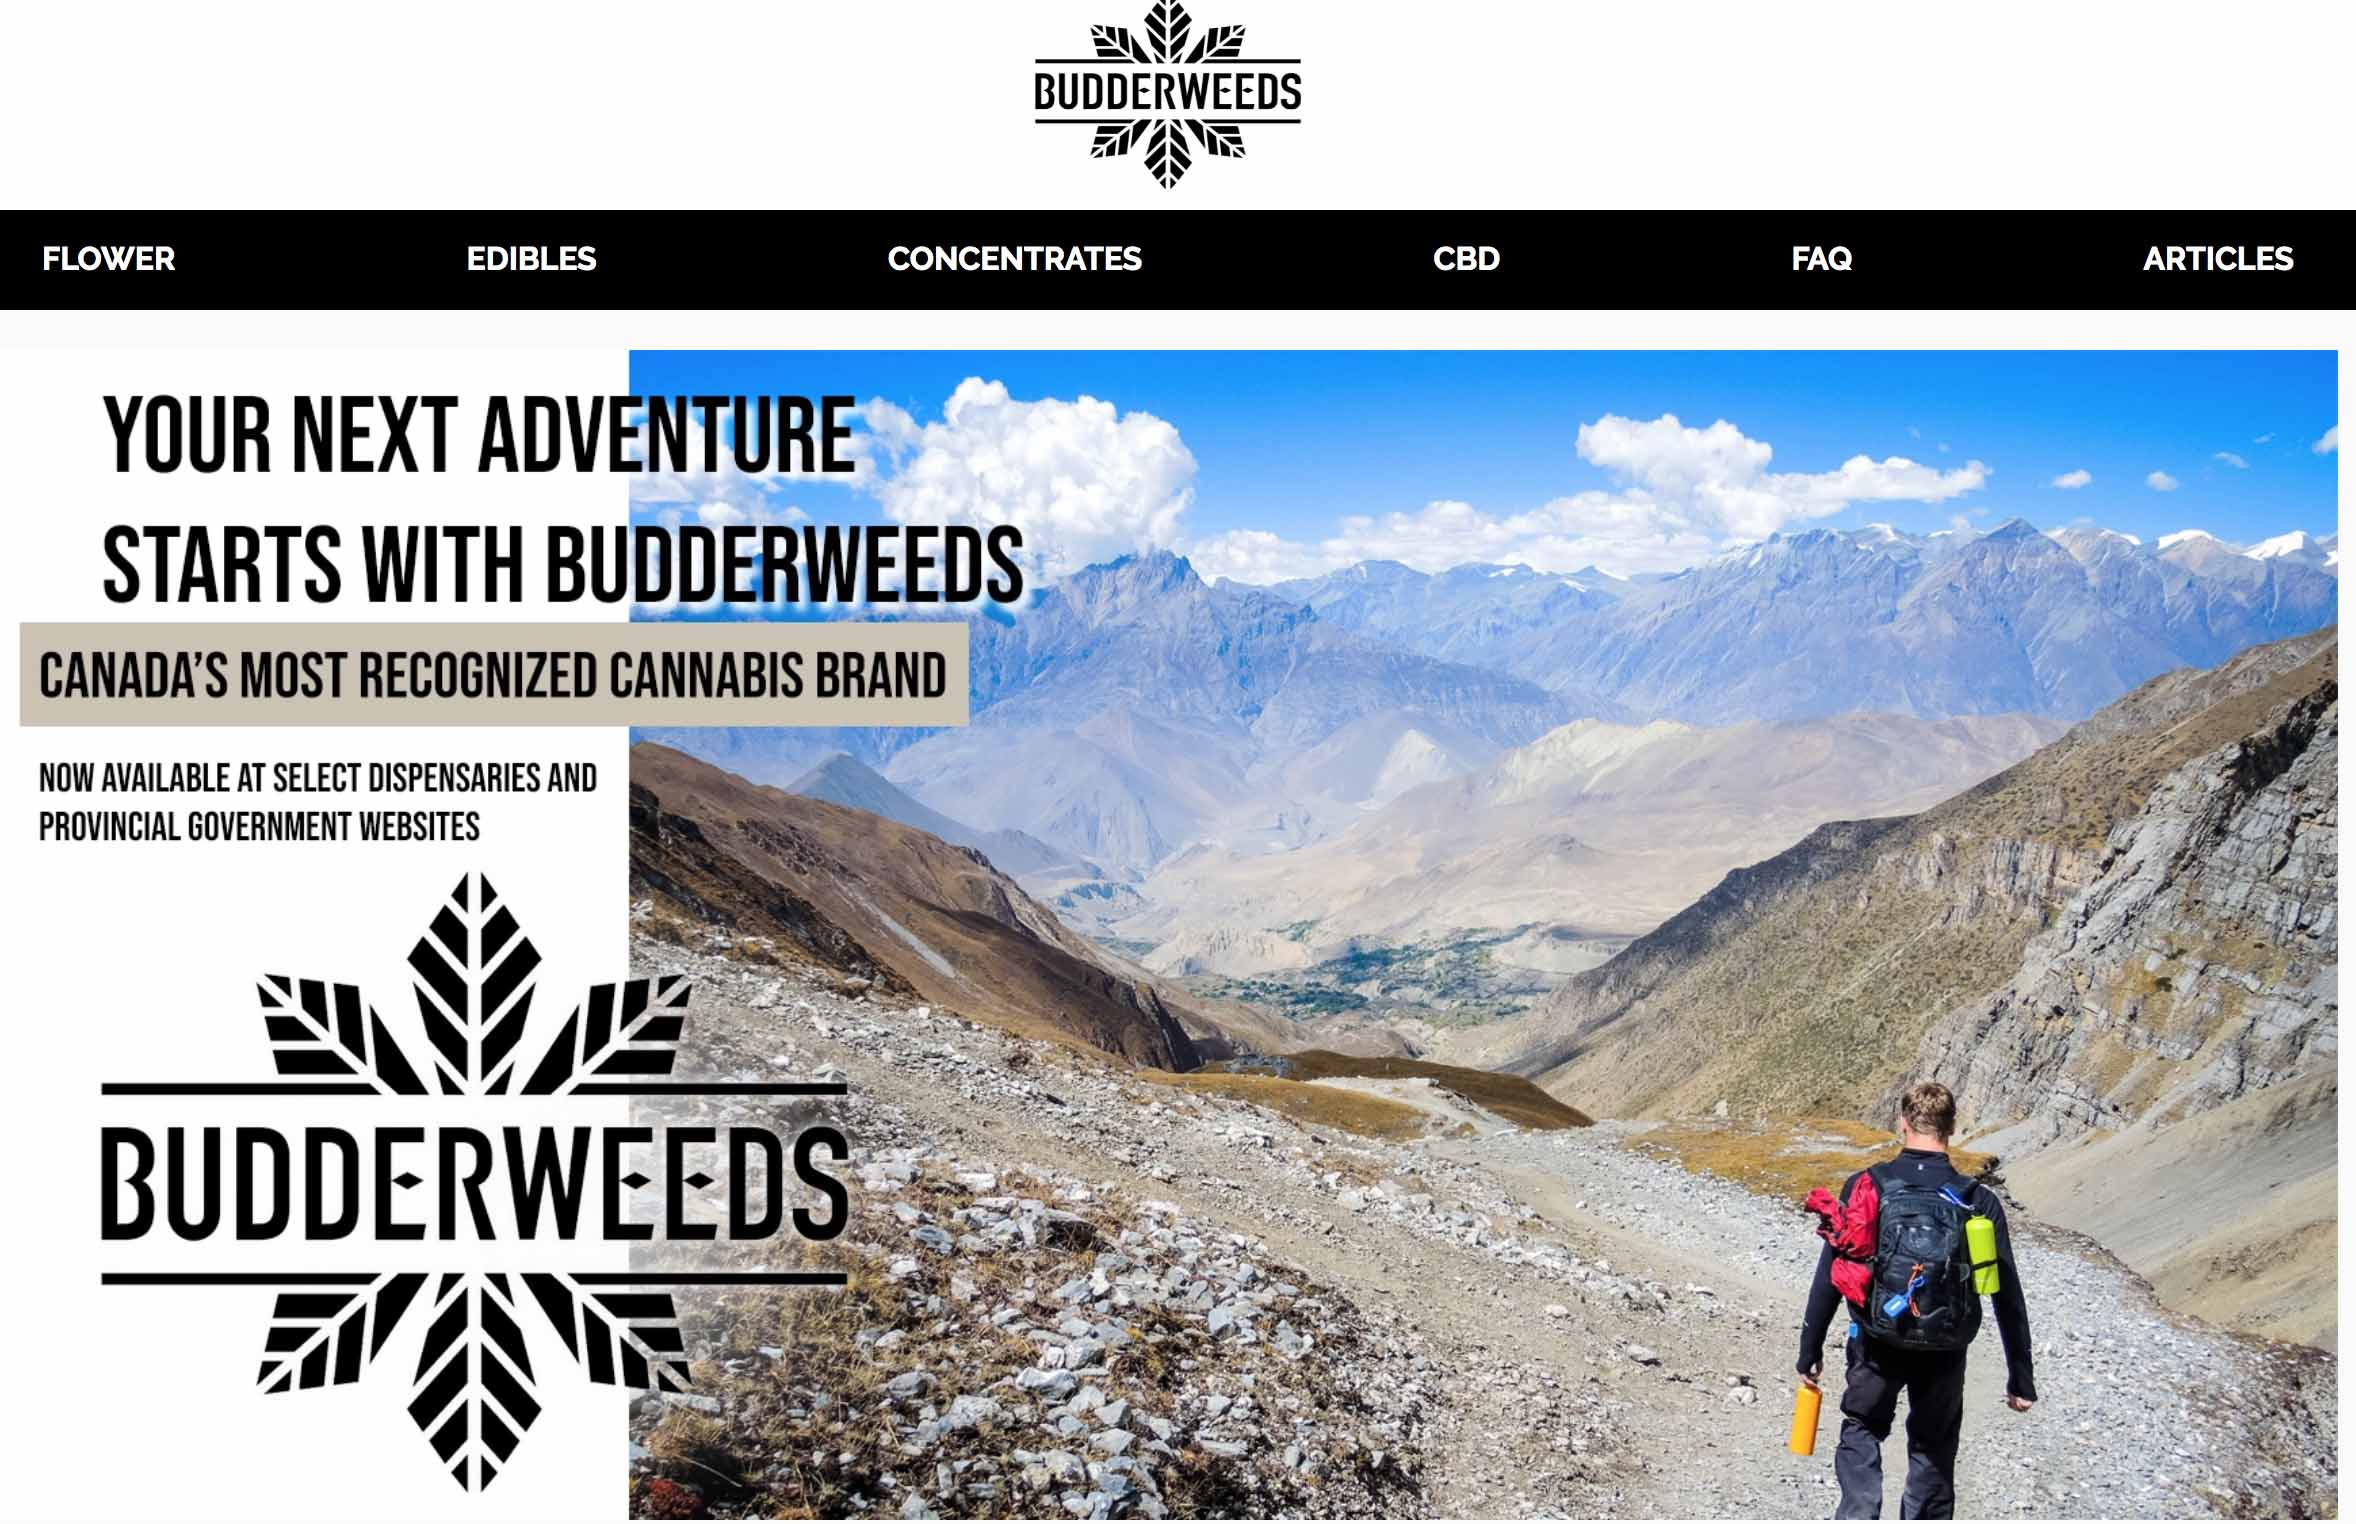 Review of Budderweeds